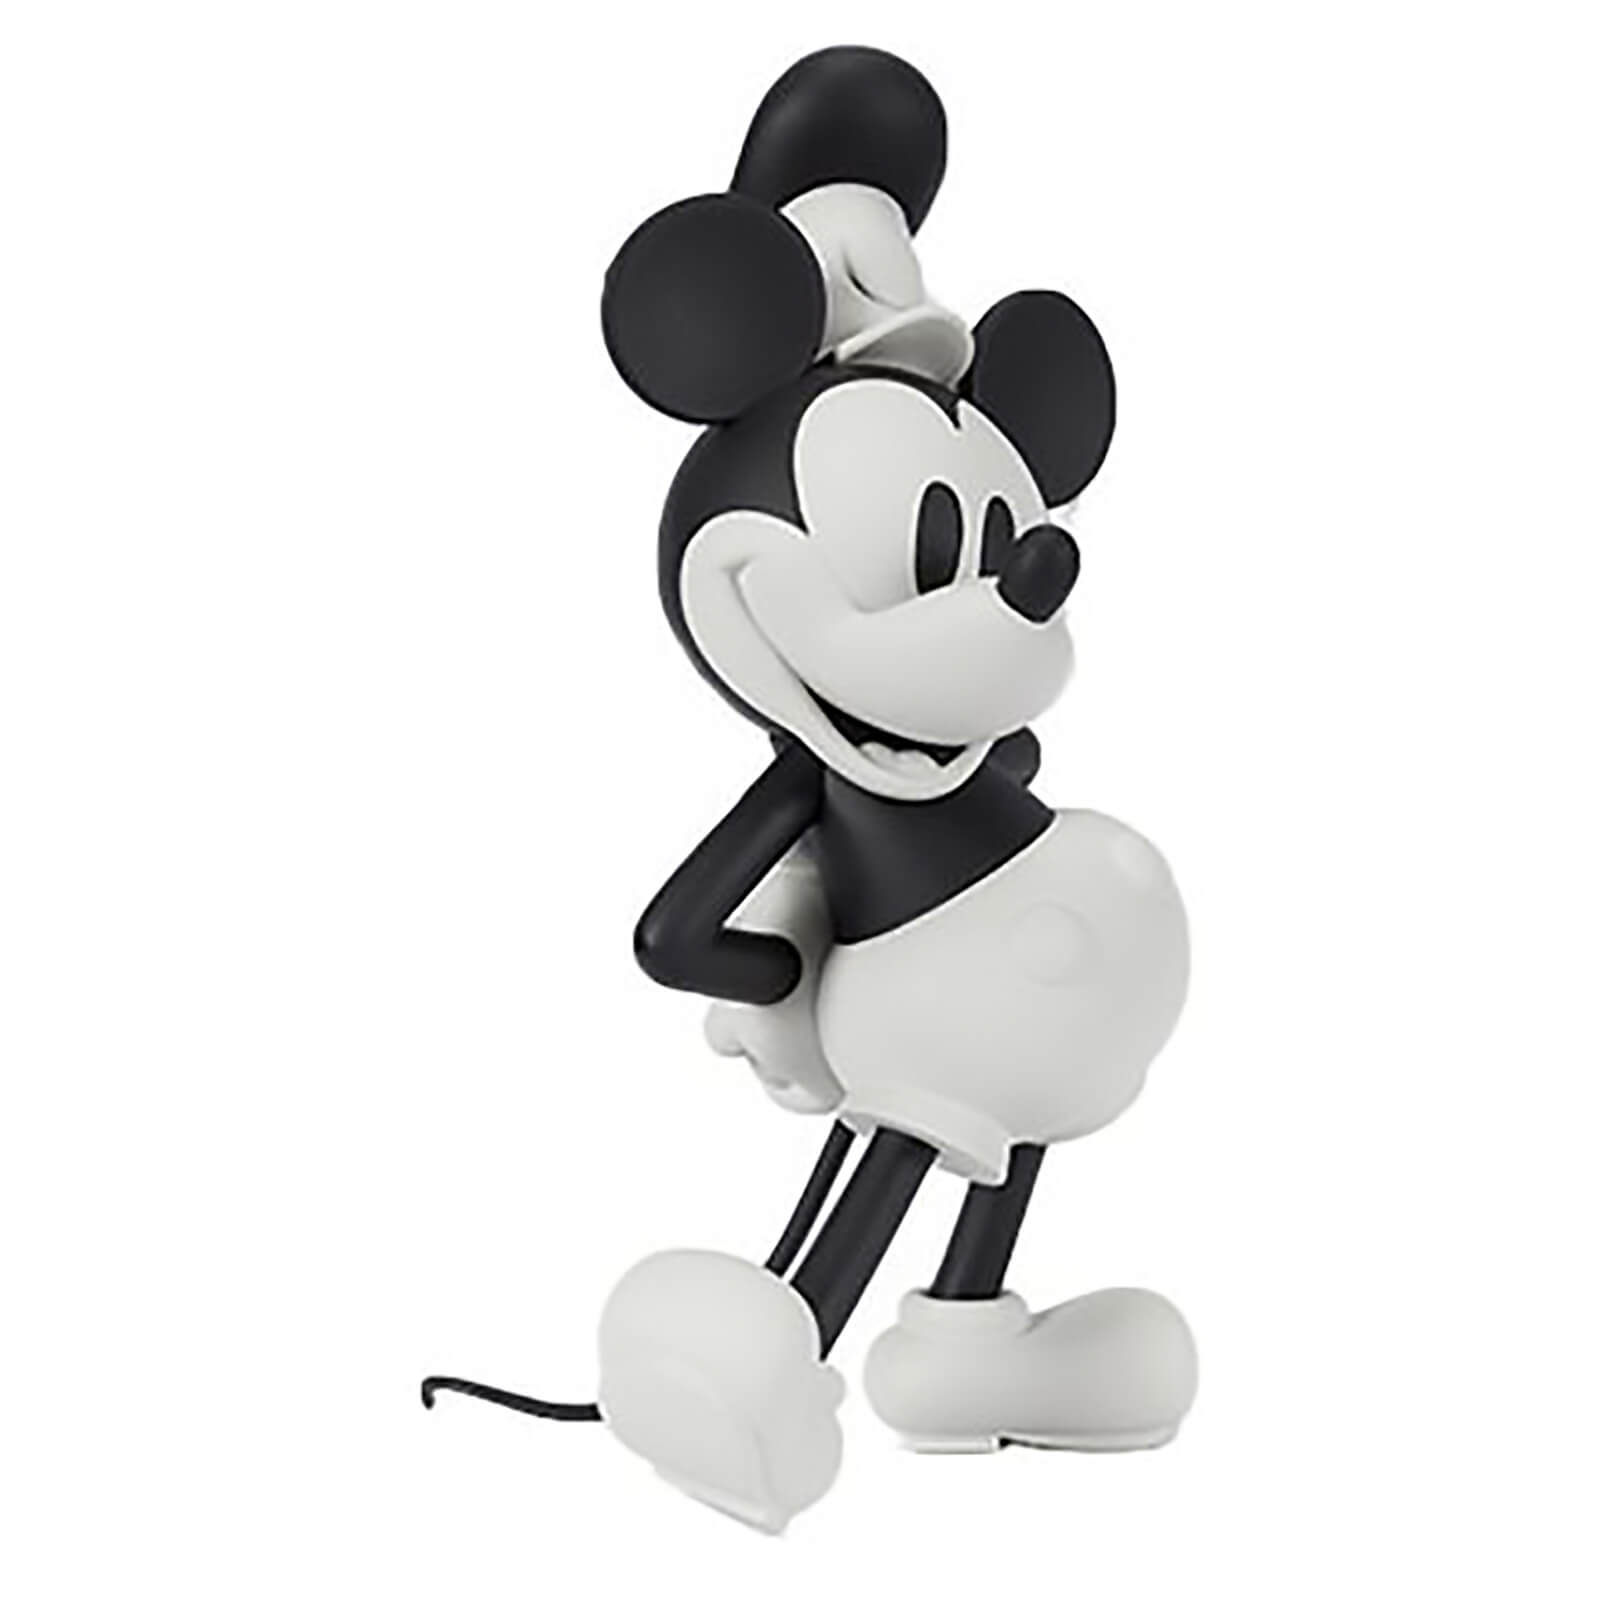 Disney Mickey Bandai Tamashii Nations Disney Mickey Mouse Steamboat Willie 1928 Figuarts Zero Statue 13cm